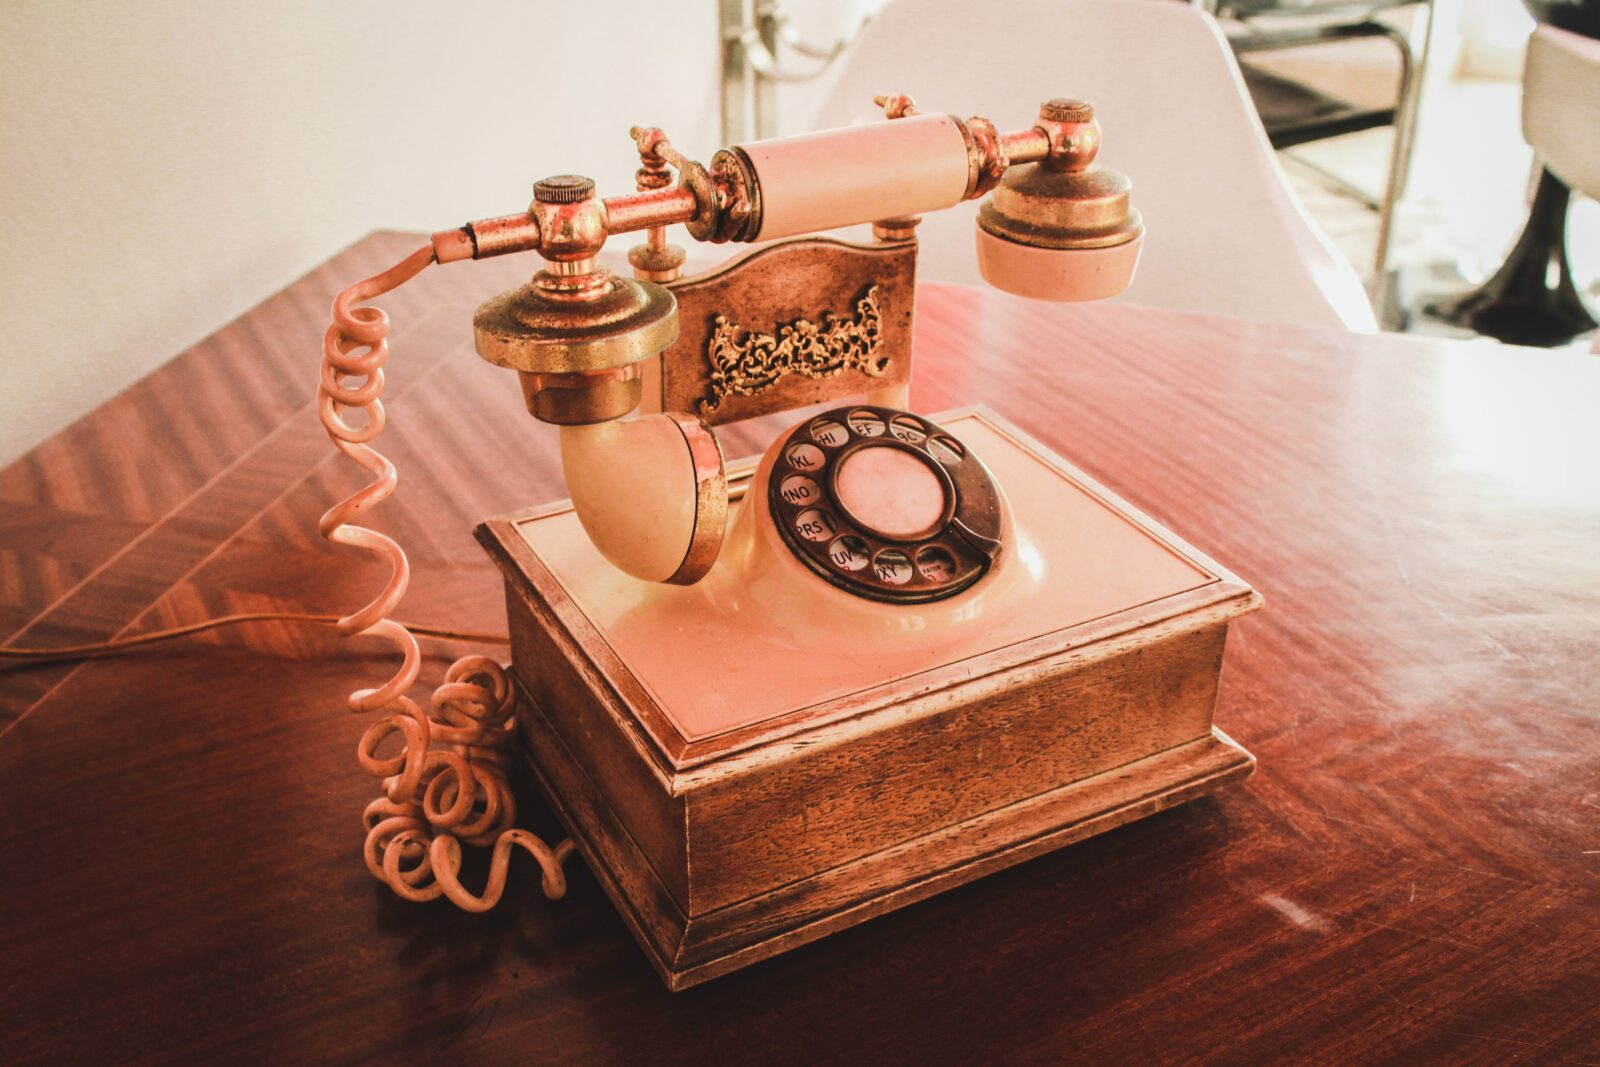 A pink turnstyle telephone